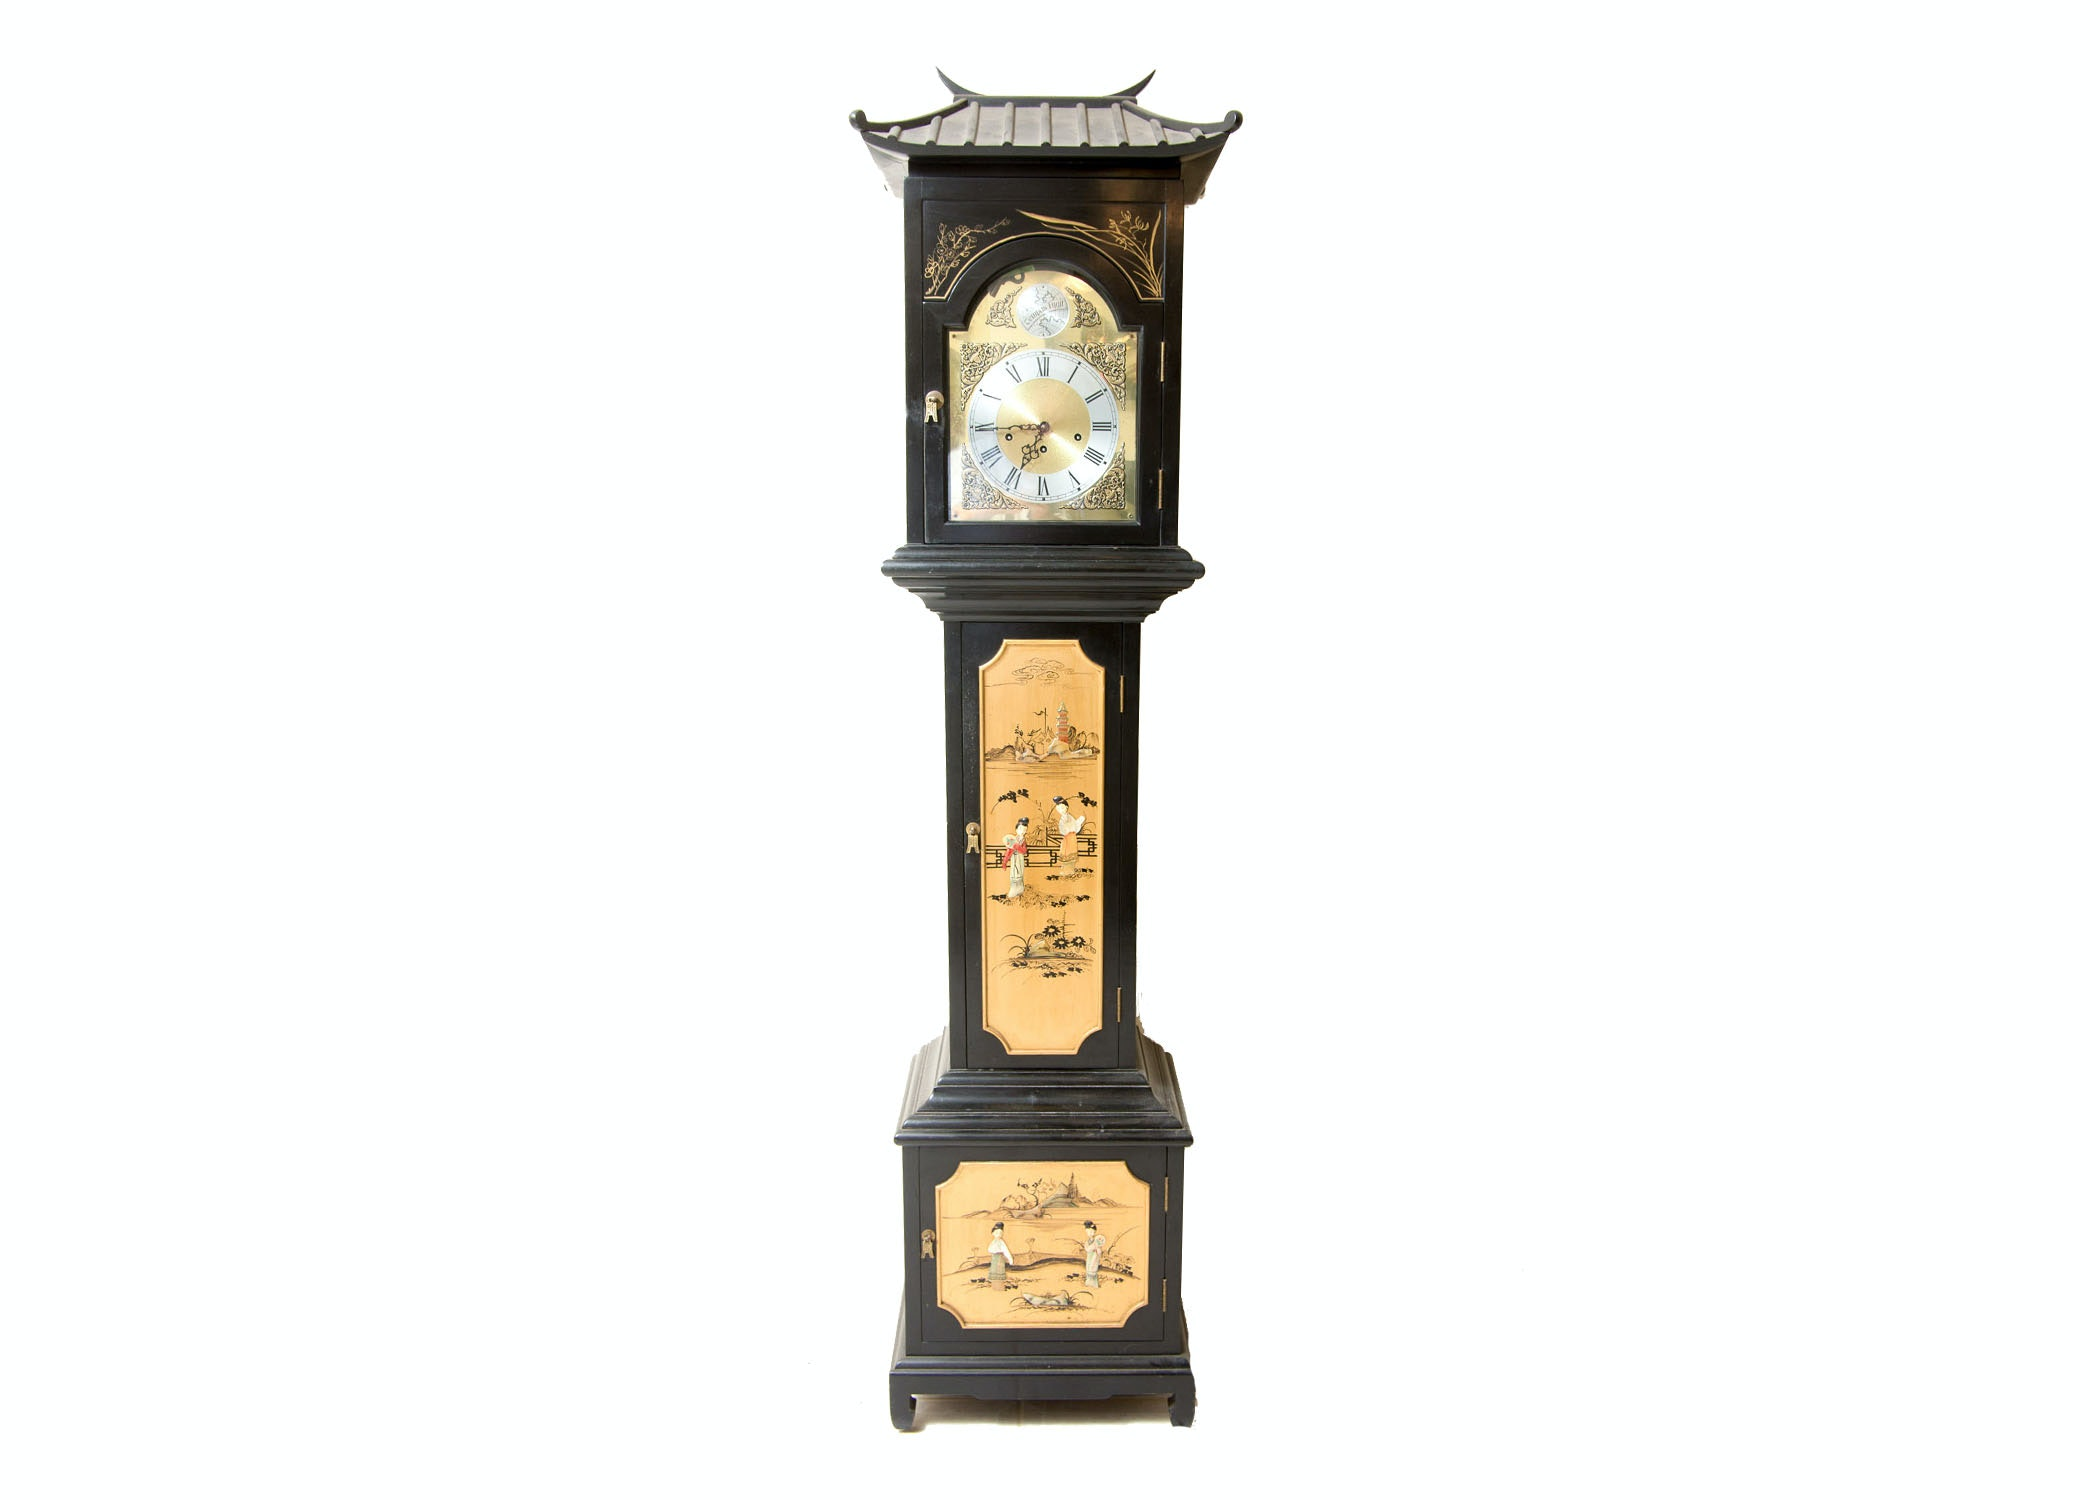 Chinoiserie Grandfather Clock with Pagoda Design